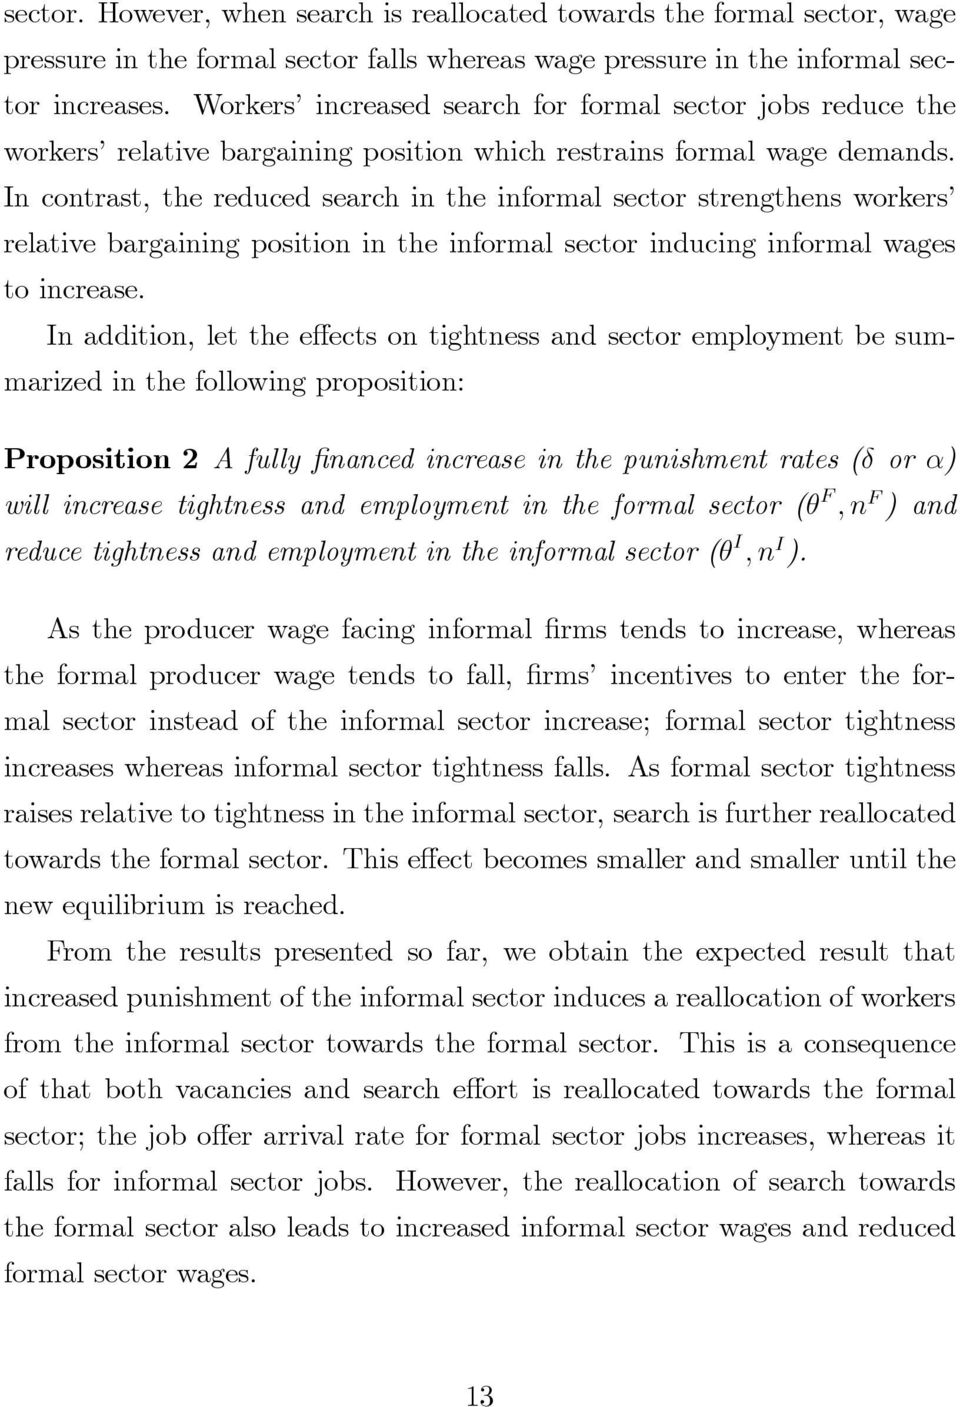 In contrast, the reduced search in the informal sector strengthens workers relative bargaining position in the informal sector inducing informal wages to increase.